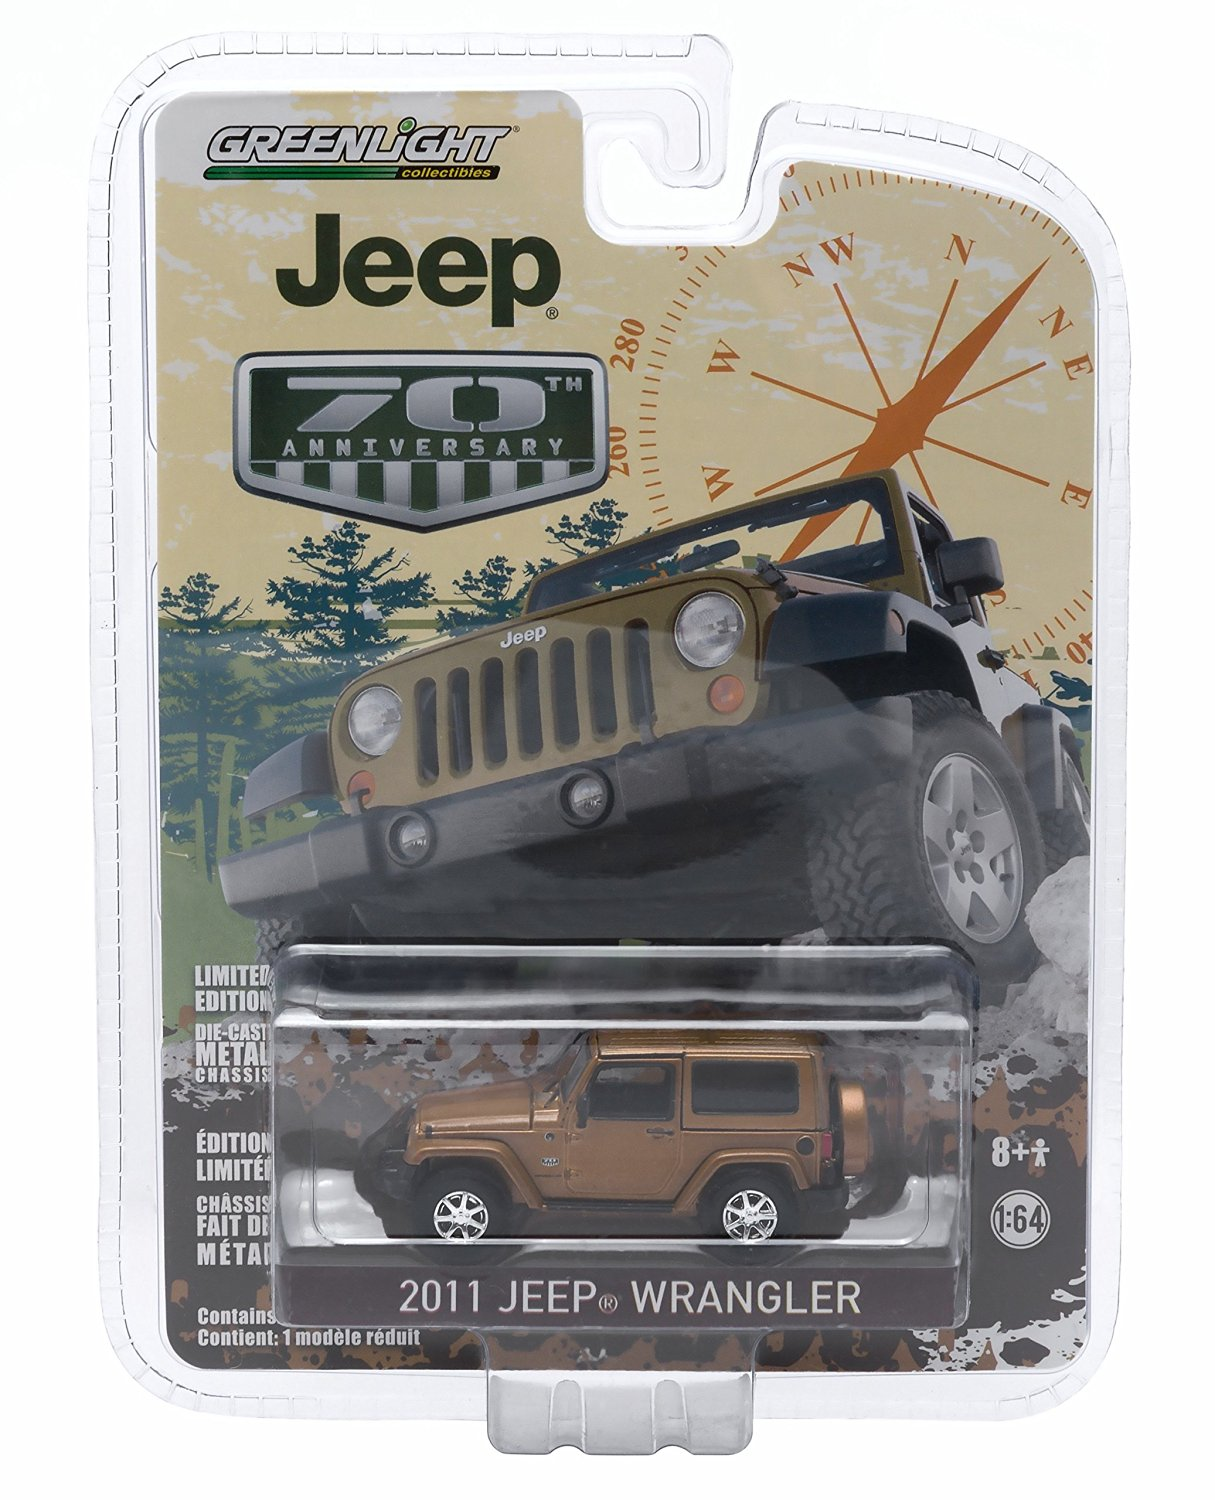 2011 JEEP WRANGLER (Bronze Star Pearl) * Jeep 70th Anniversary * 2015 Greenlight Collectibles Anniversary Collection Series 2 Limited Edition 1:64 Scale Die-Cast Vehicle